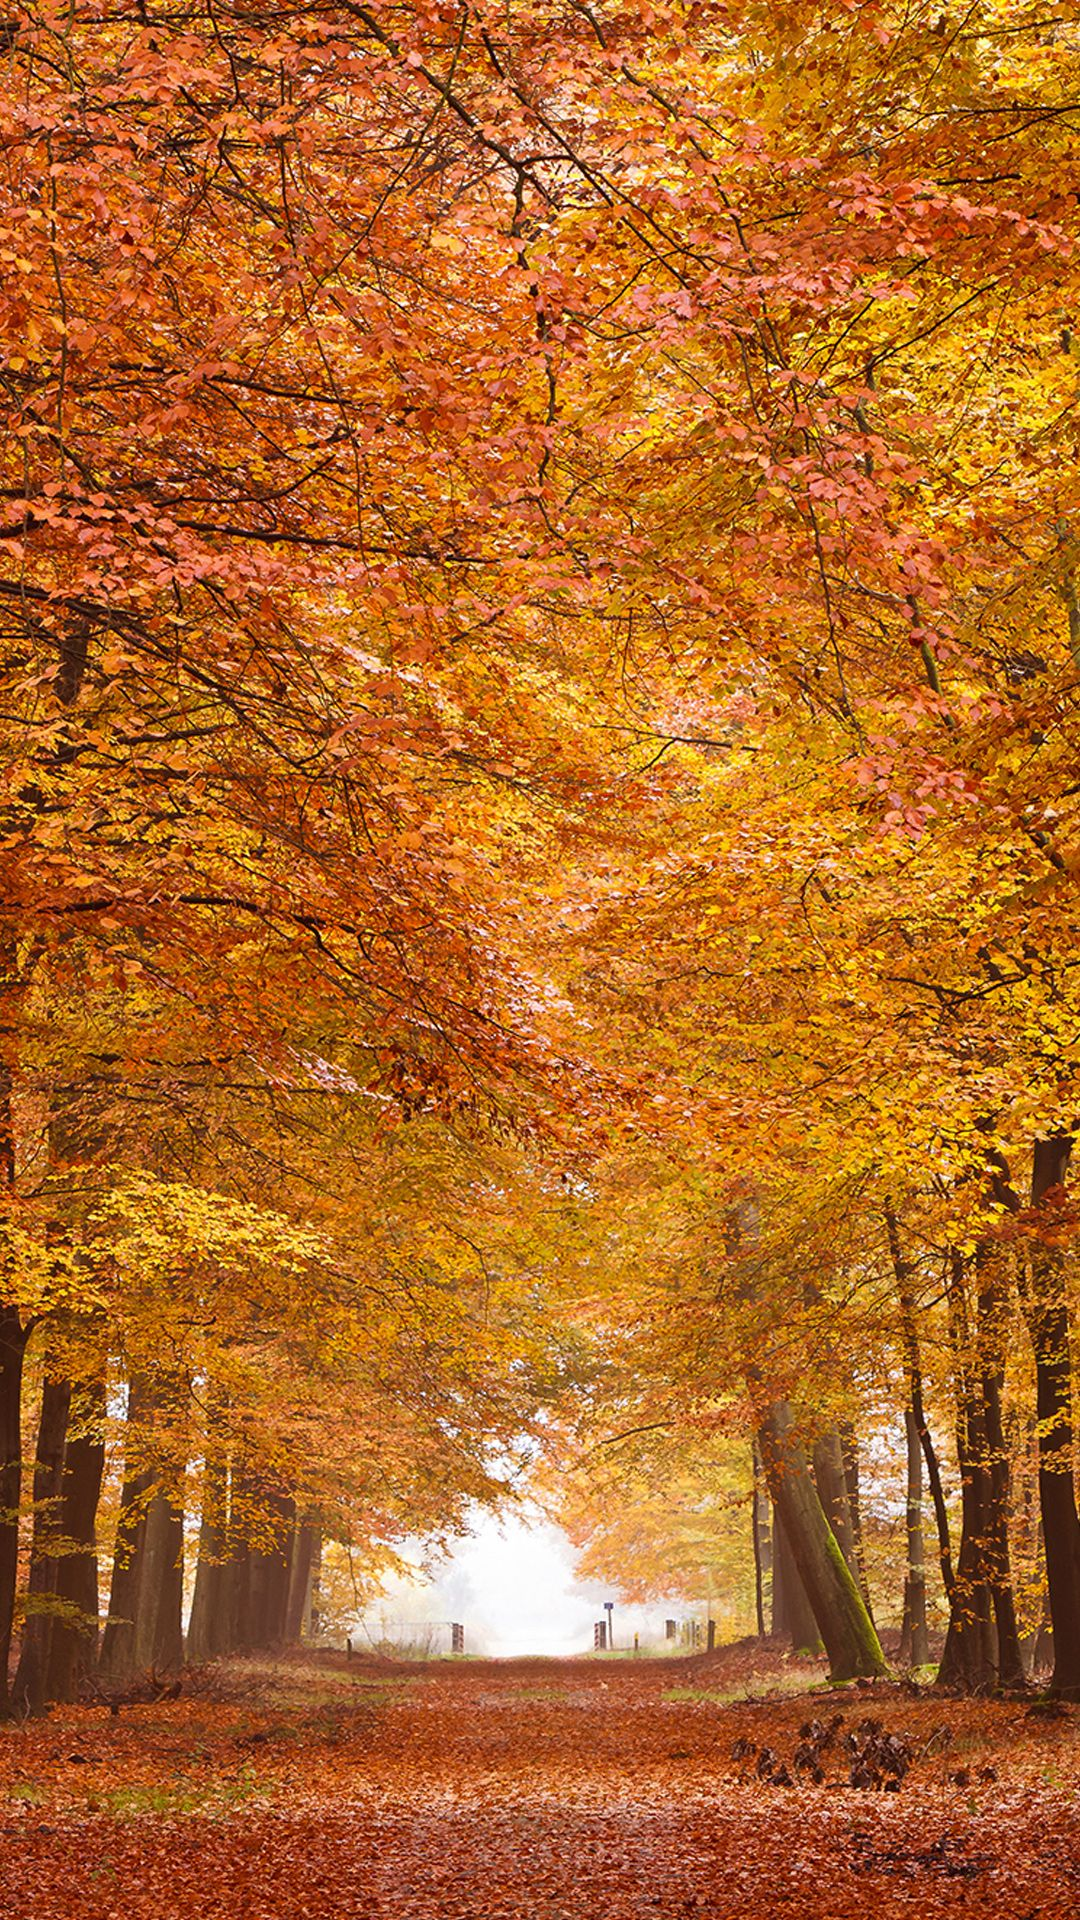 Fall Wallpaper Hd Resolution Hupages Download Iphone Wallpapers Fall Wallpaper Free Fall Wallpaper Android Wallpaper